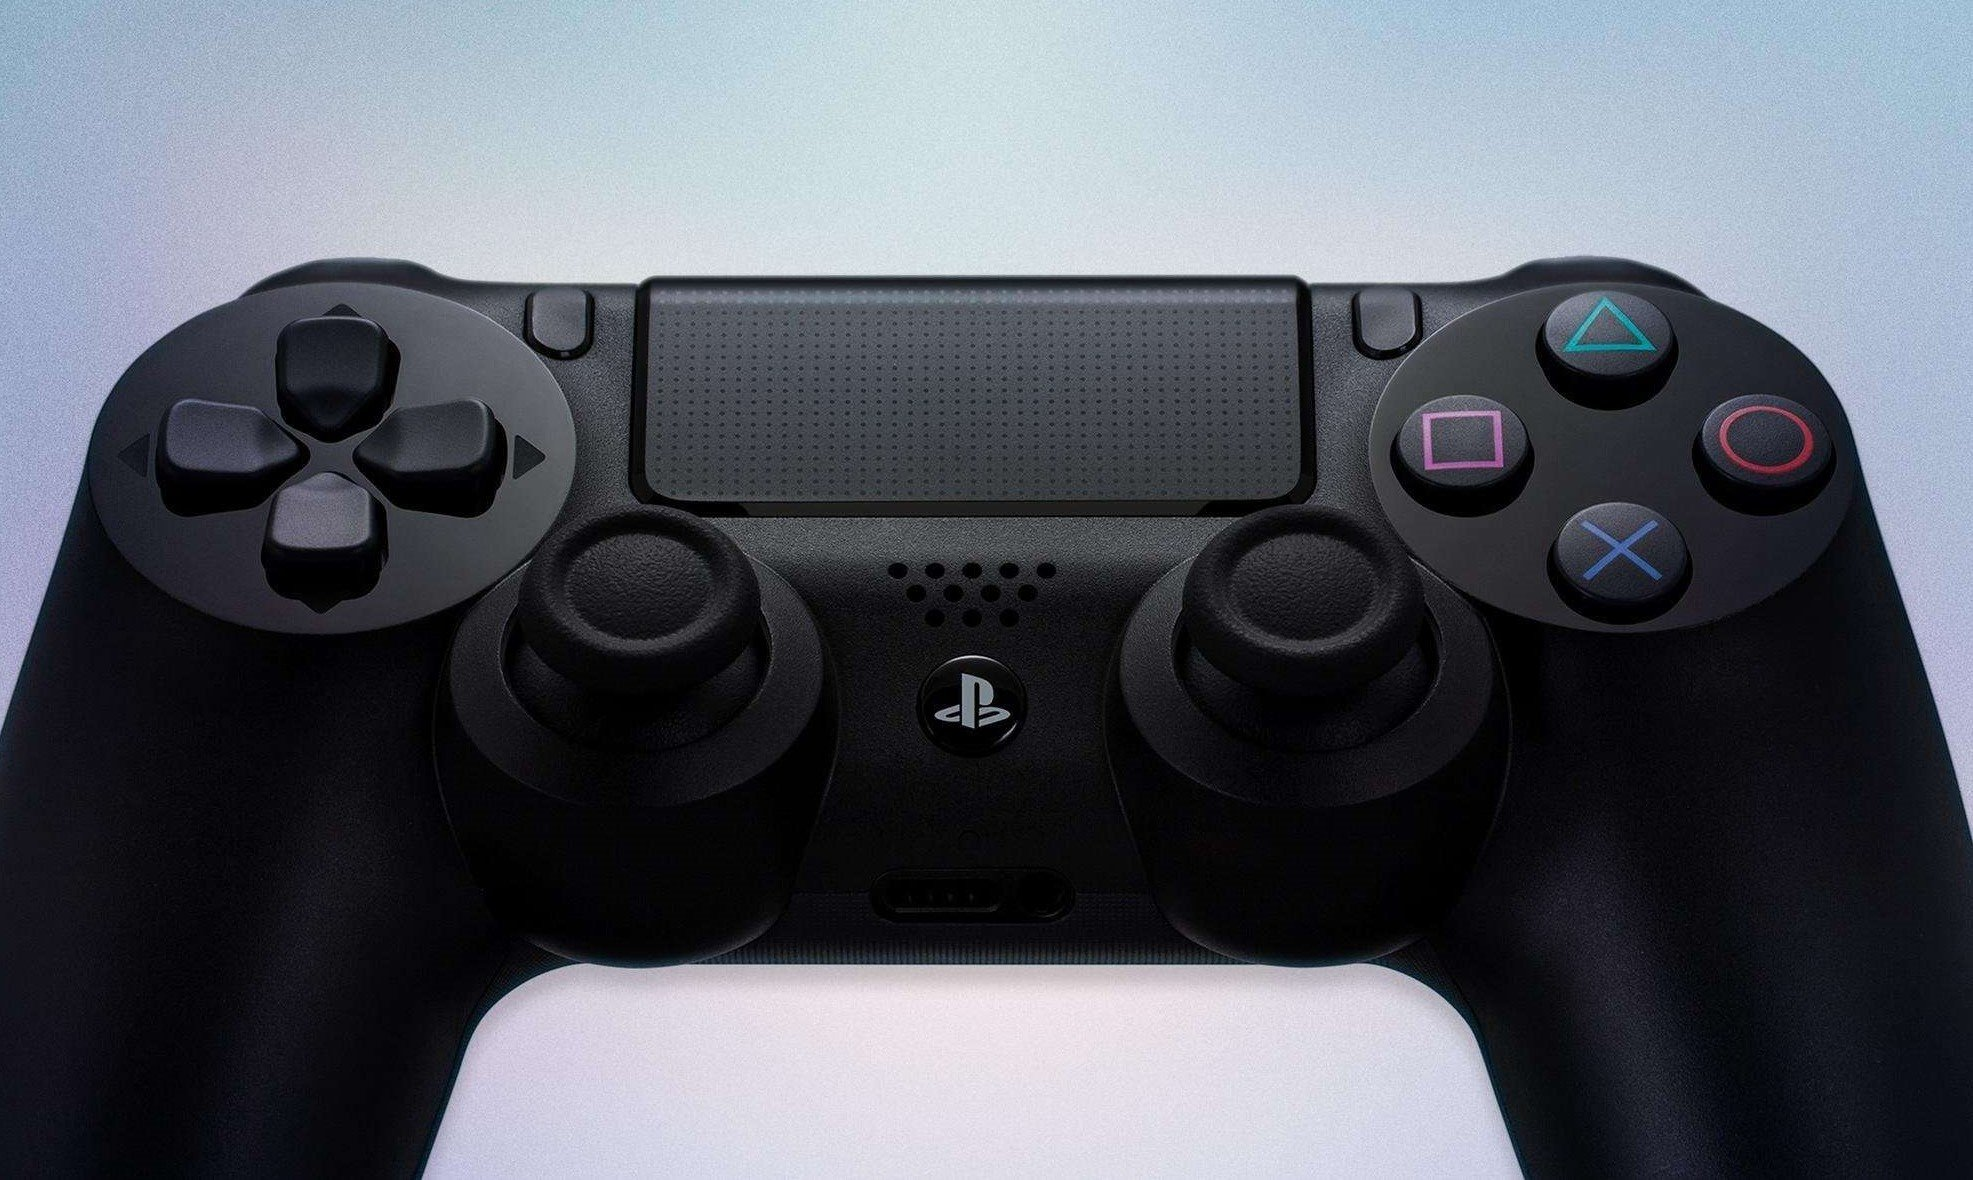 Ps5 Backwards Compatibility Can You Play Ps4 Games On Playstation